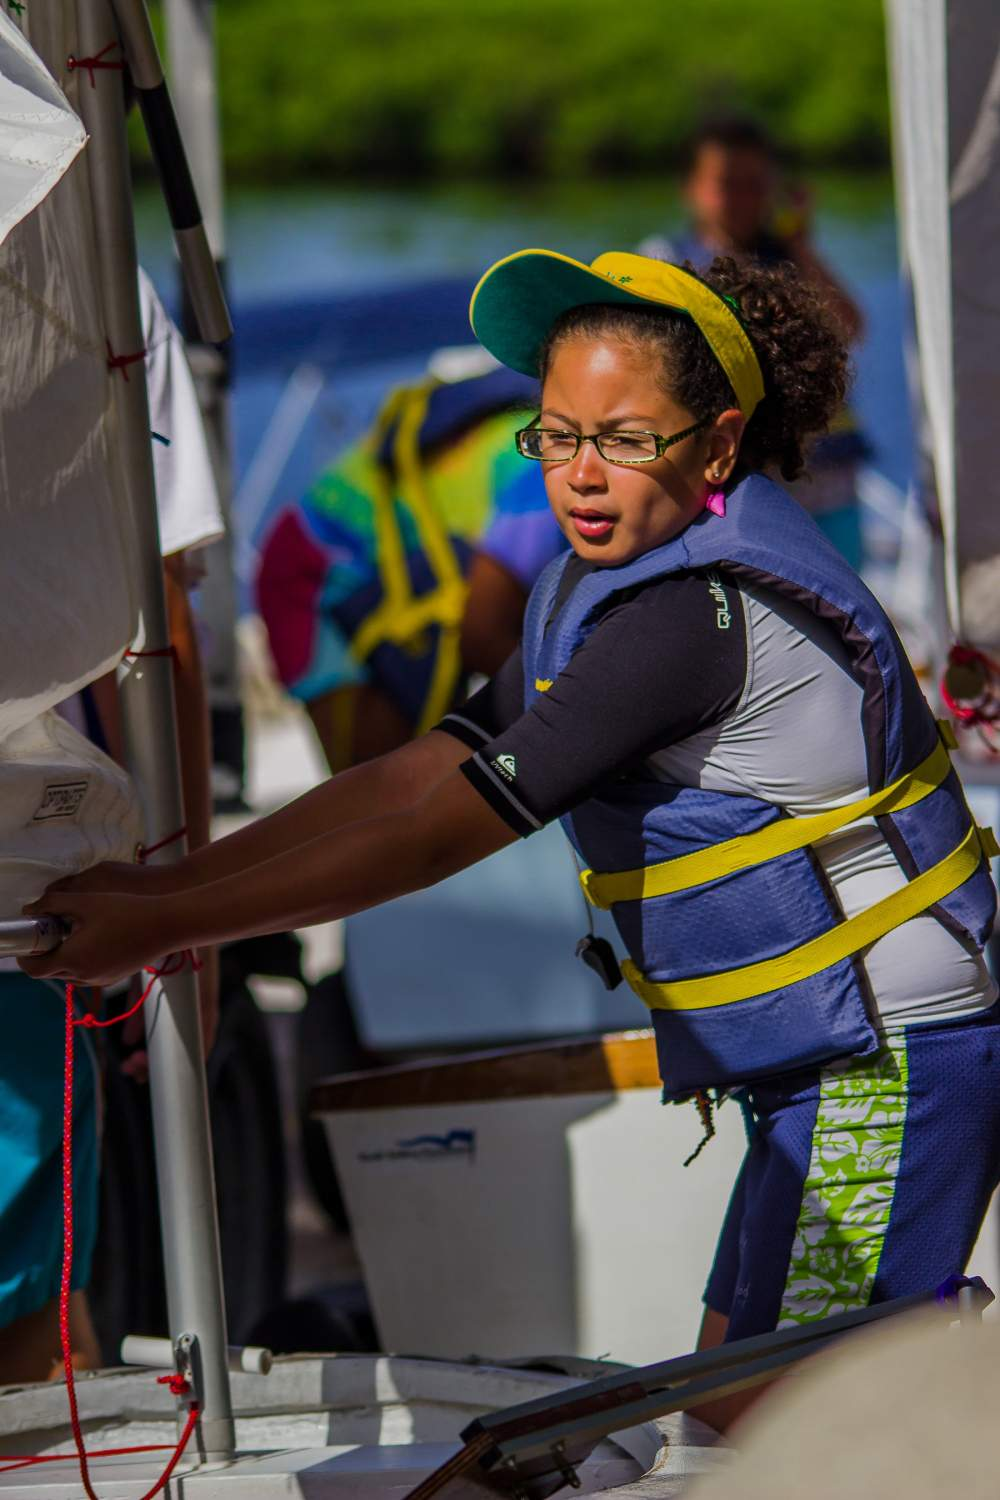 Youth Sailor working on her boat